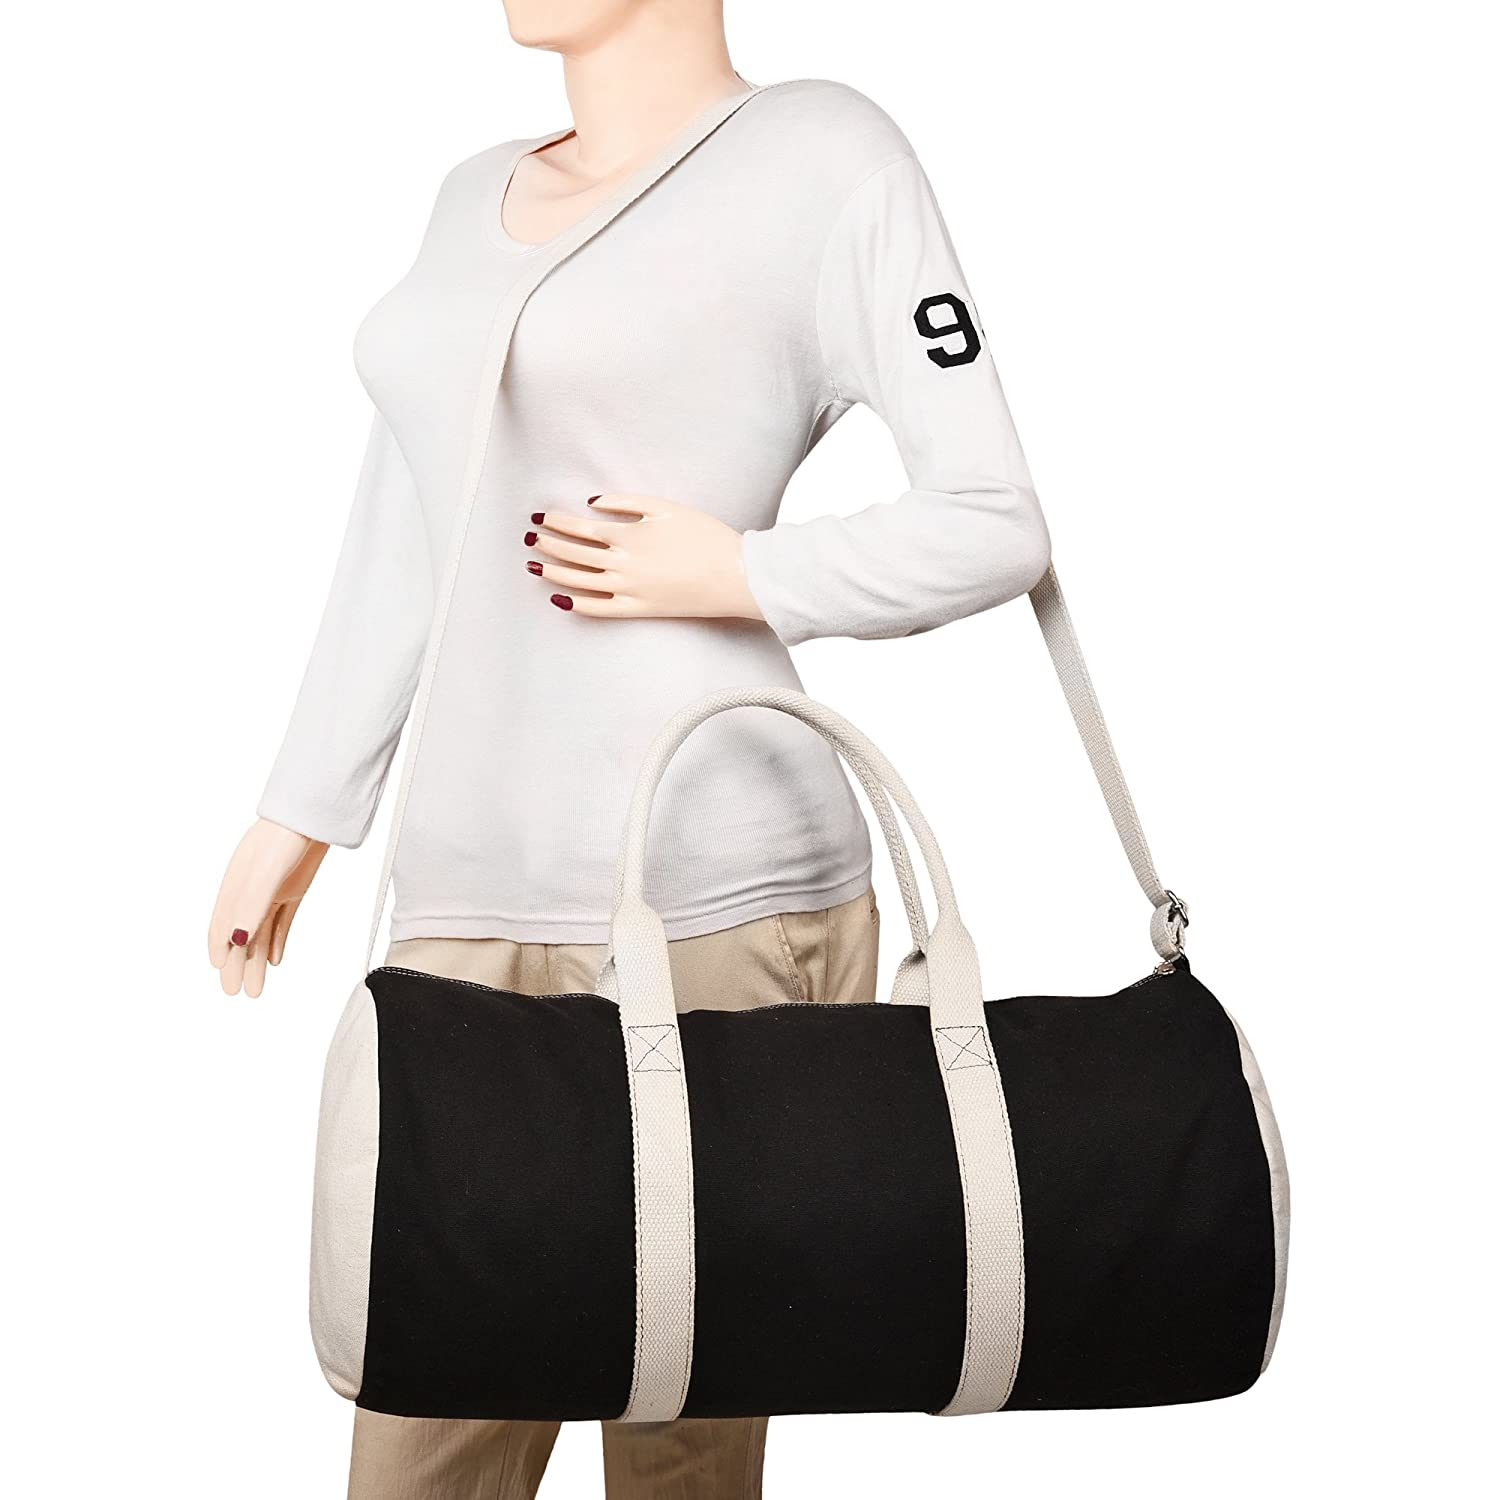 0bf0ae74d2 Anekaant Monochrome Black Off-white Canvas Duffle Bag  Amazon.in  Bags